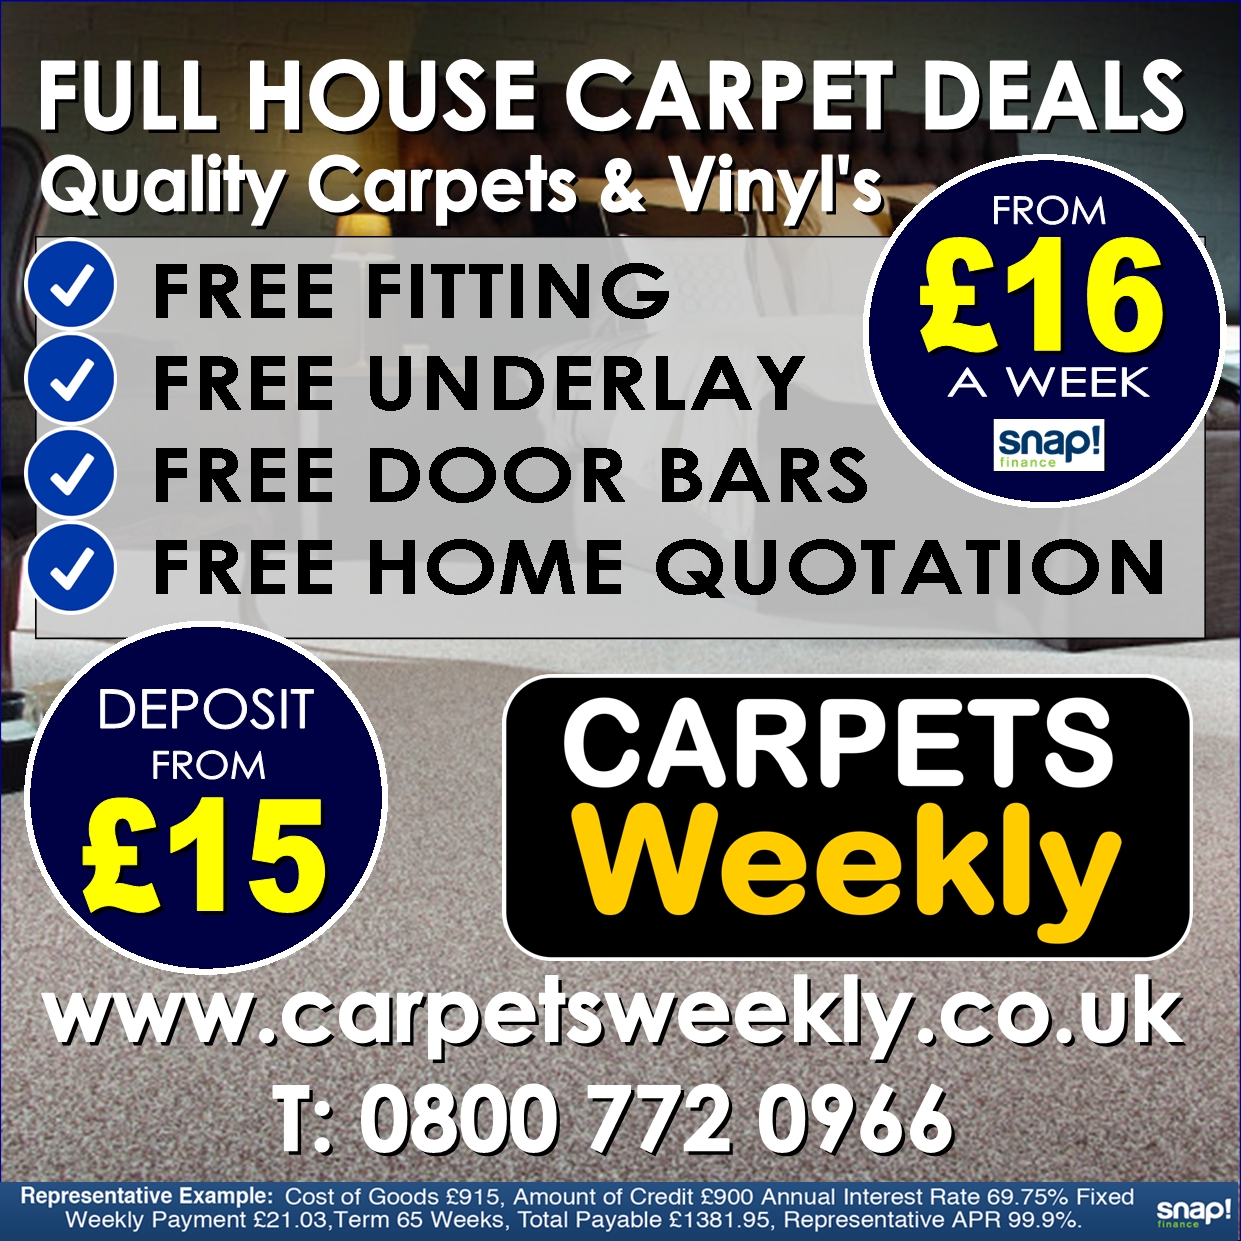 Full House Carpet Deals from Carpets Weekly www.carpetsweekly.co.uk Tel 08007720966